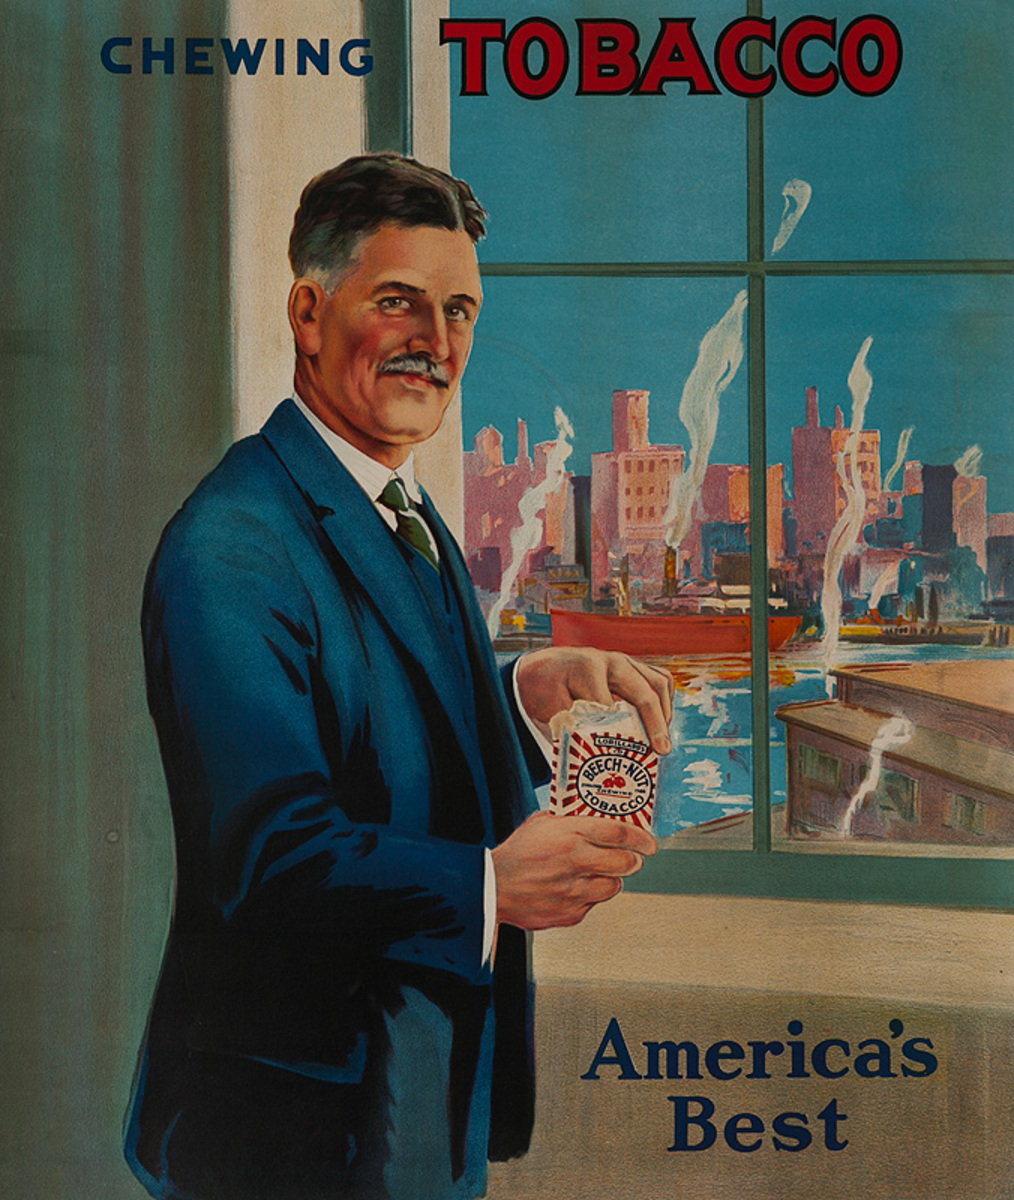 America's Best Chewing Tobacco Original American Advertising Poster